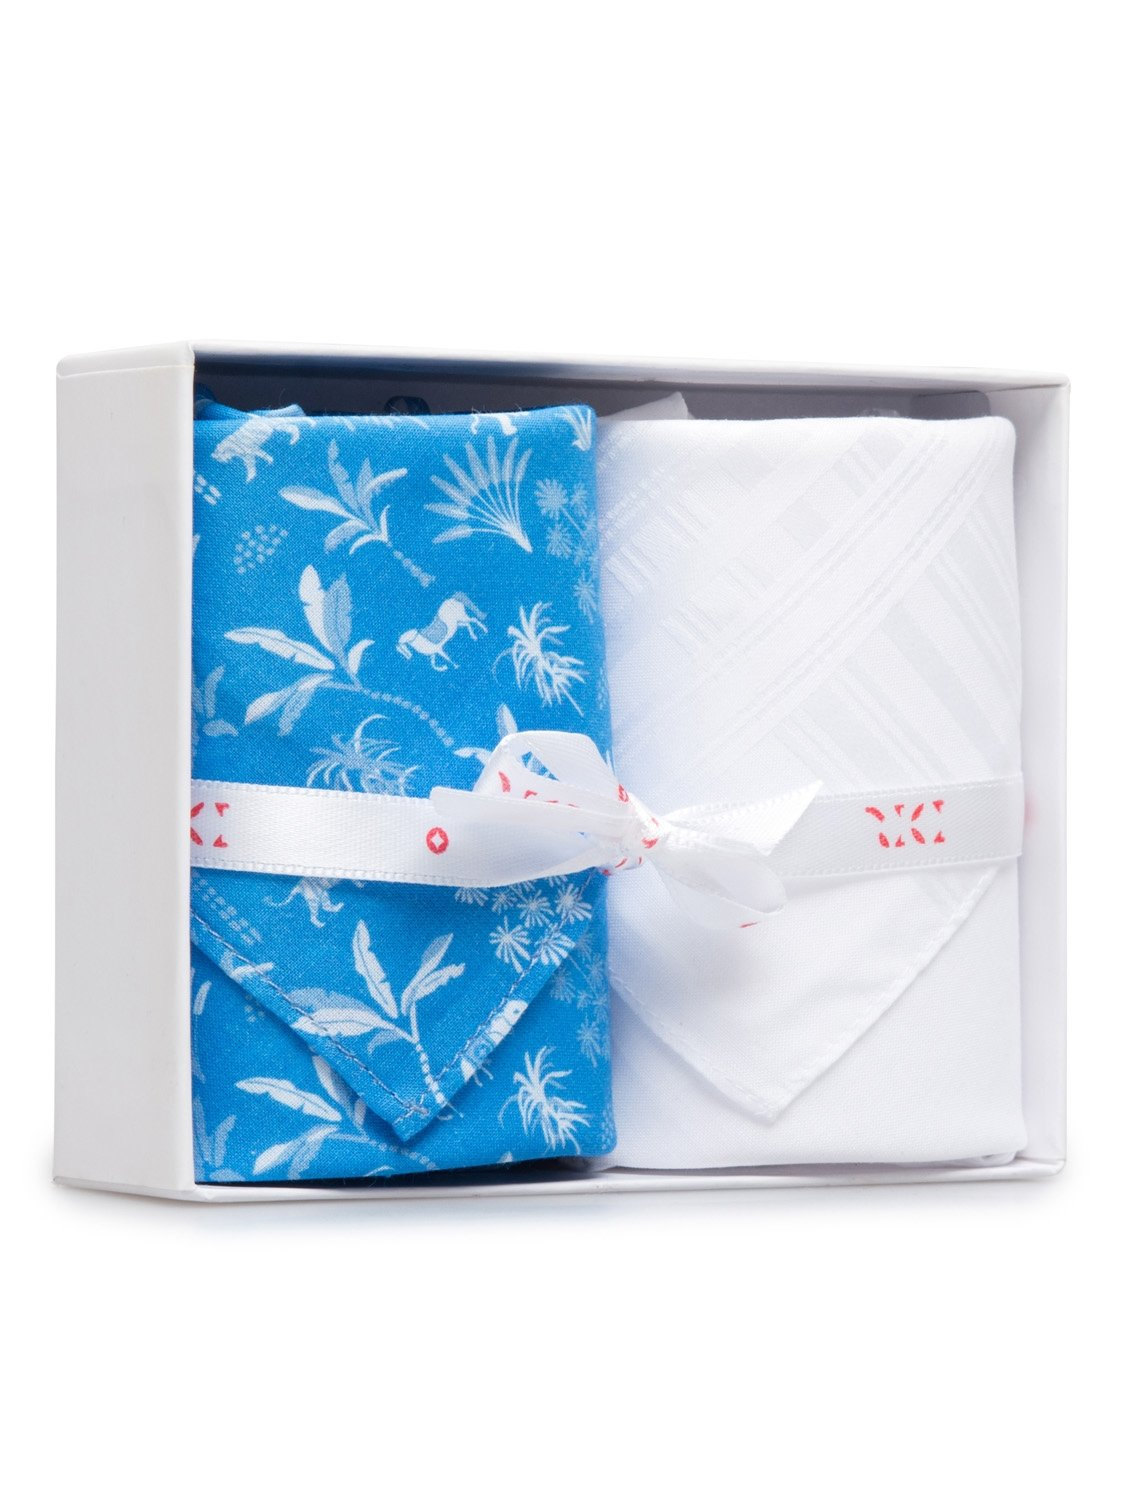 Handkerchief Set Pack 131 Ledbury 8 Blue & Plain White